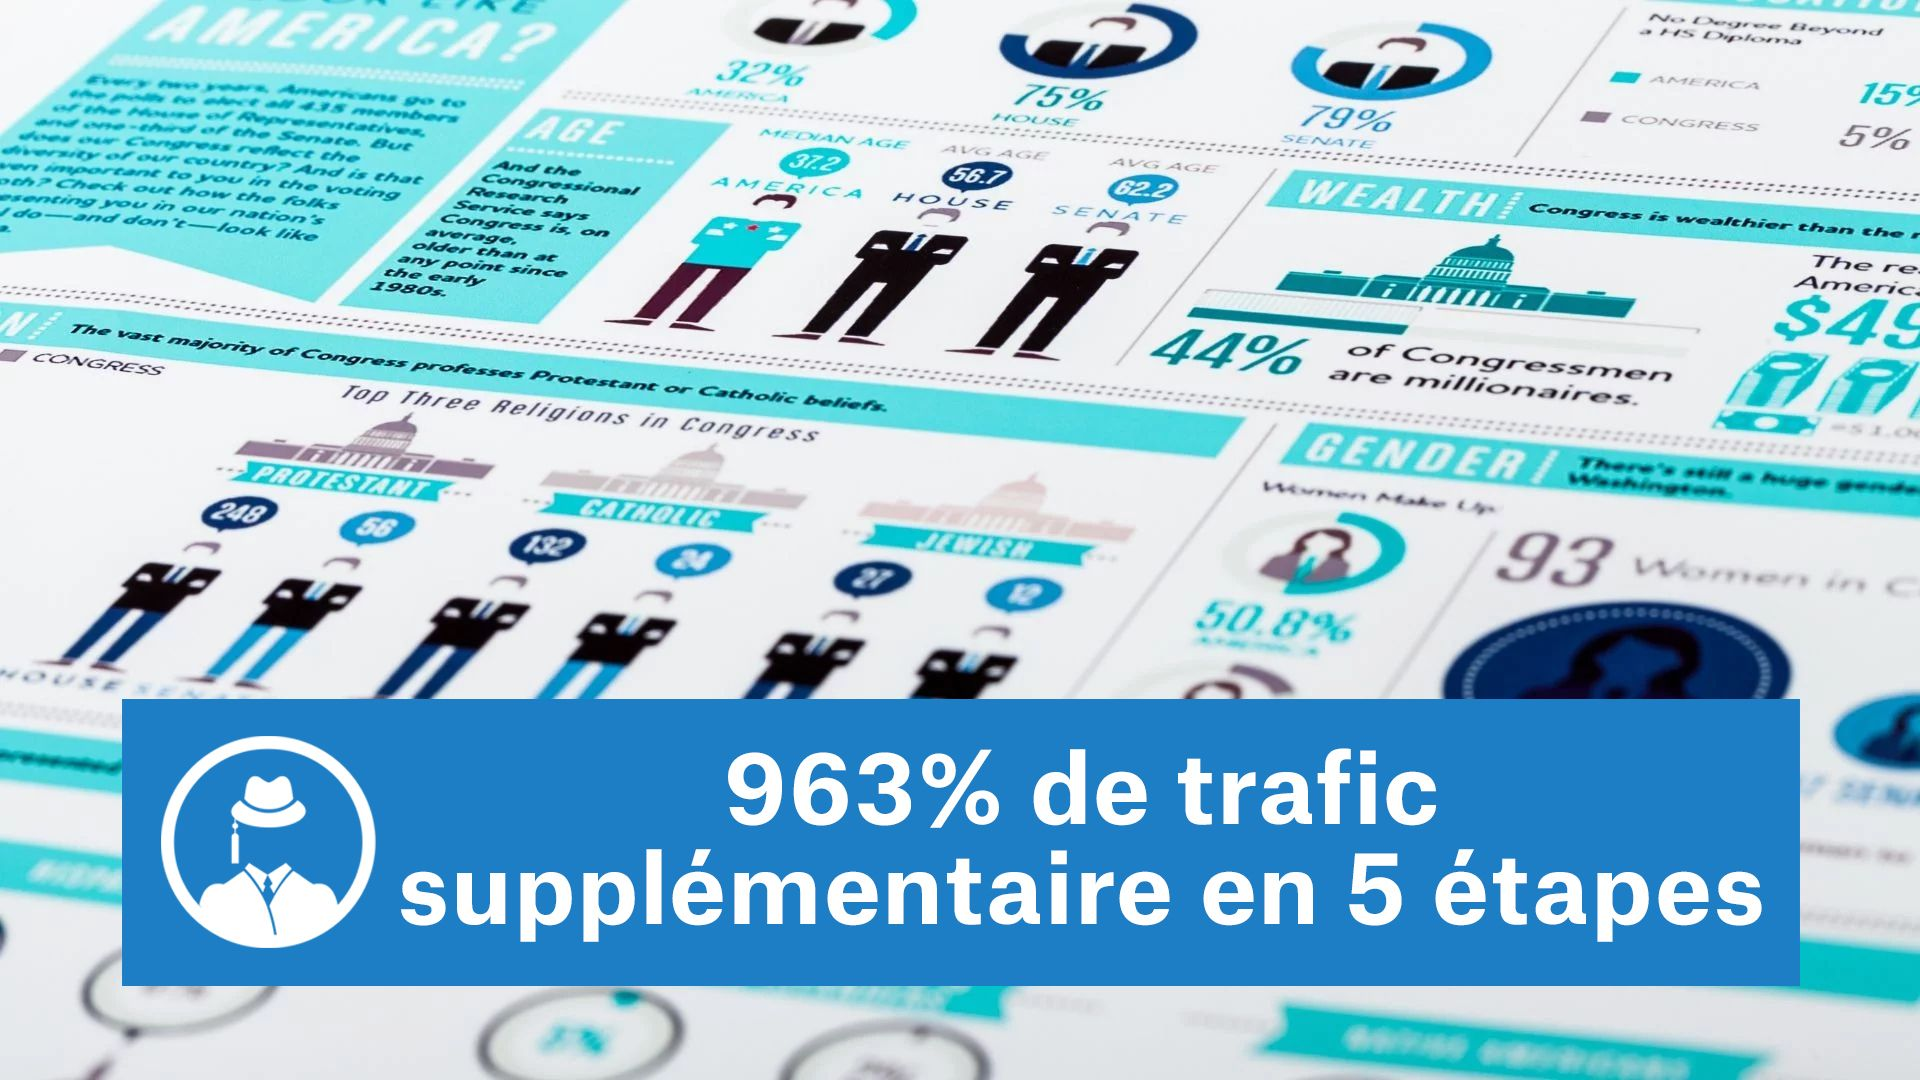 963% de trafic supplémentaire #GrowthHacking #WebMarketing #FormationGrowthHacking #CentreDeFormationFrance #TunnelAARRR #AARRR #SocialMedia #CommunityManagement #SEO #SiteWeb